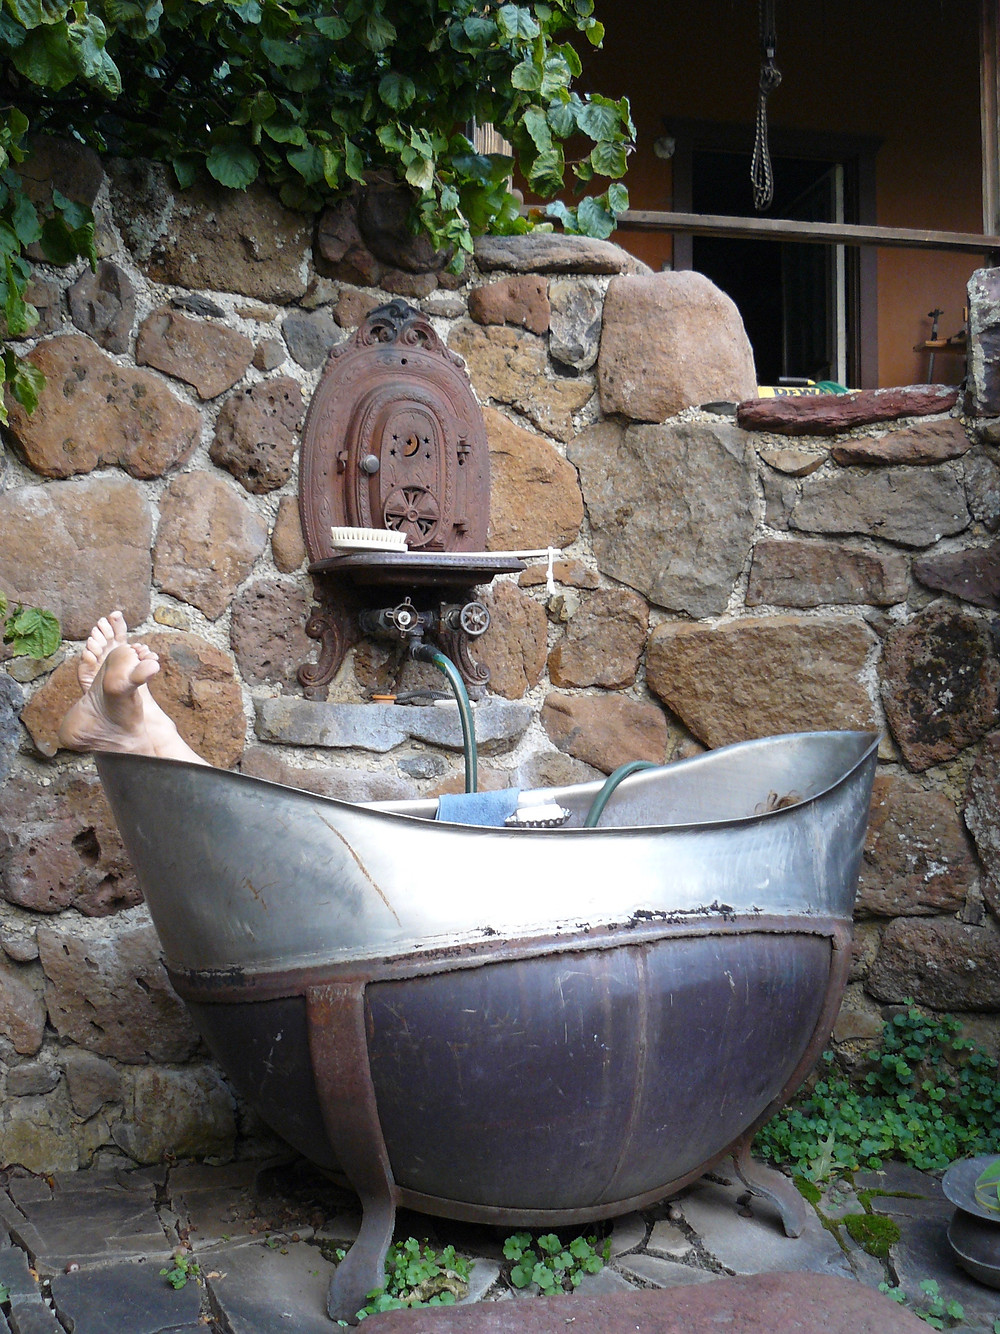 A pea pod shaped tub in a stone walled grotto that has an old wood stove front set into the wall  and 2 feet are sticking out one end of the tub.